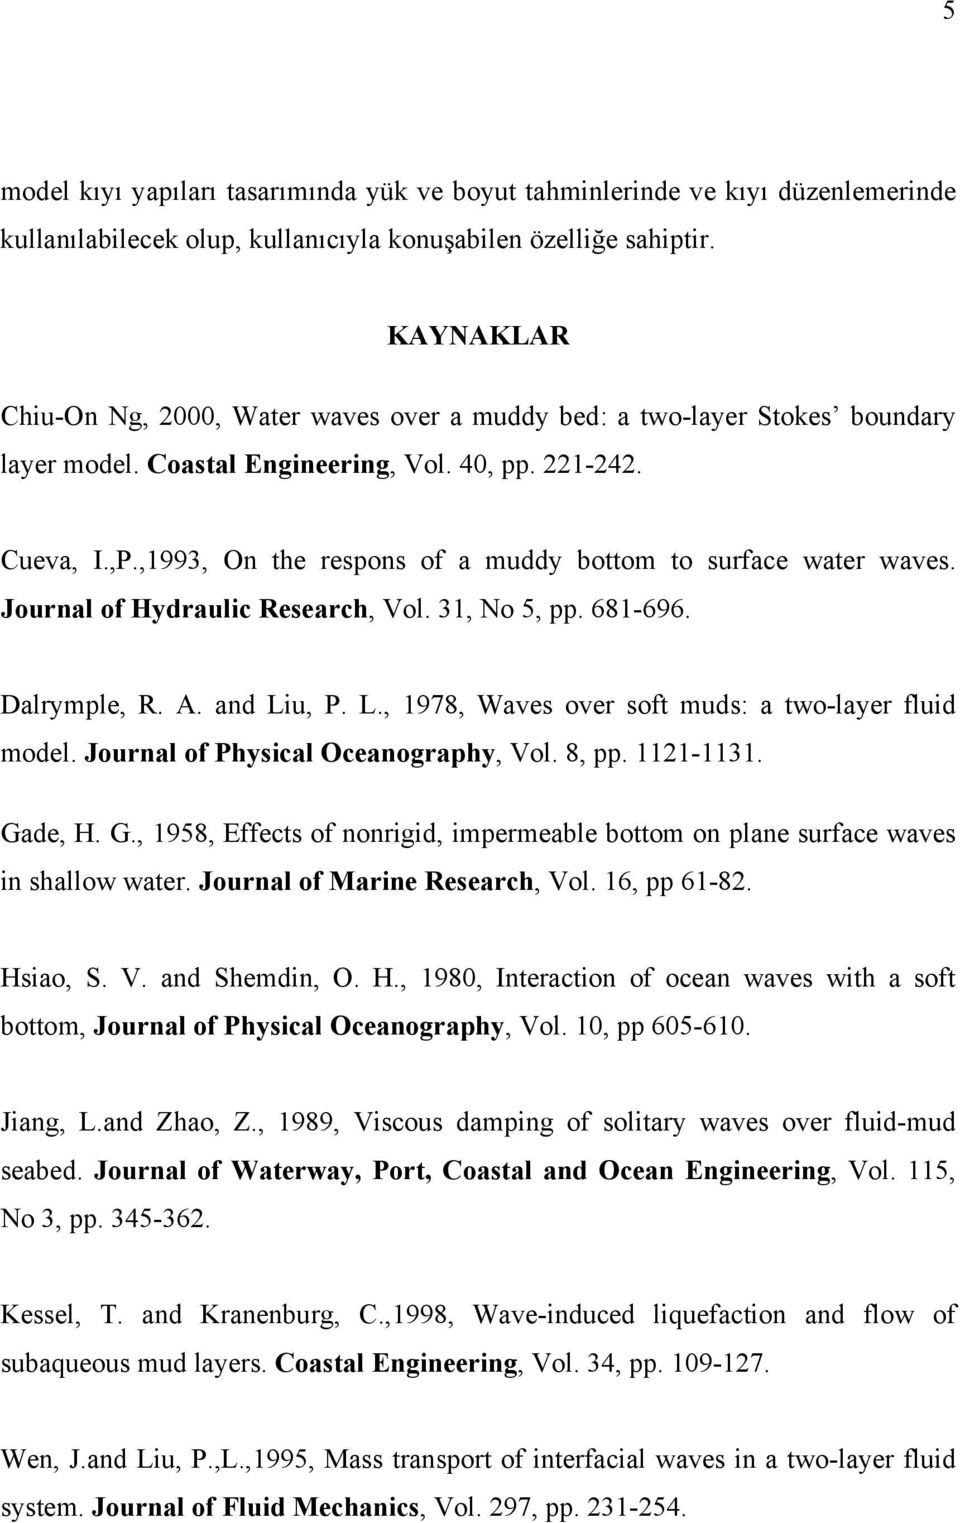 Jornal of Hydralc Research, Vol. 3, No 5, pp. 68-696. Dalrymple, R. A. and L, P. L., 978, Waves over sof mds: a o-layer fld model. Jornal of Physcal Oceanography, Vol. 8, pp. -3. Ga